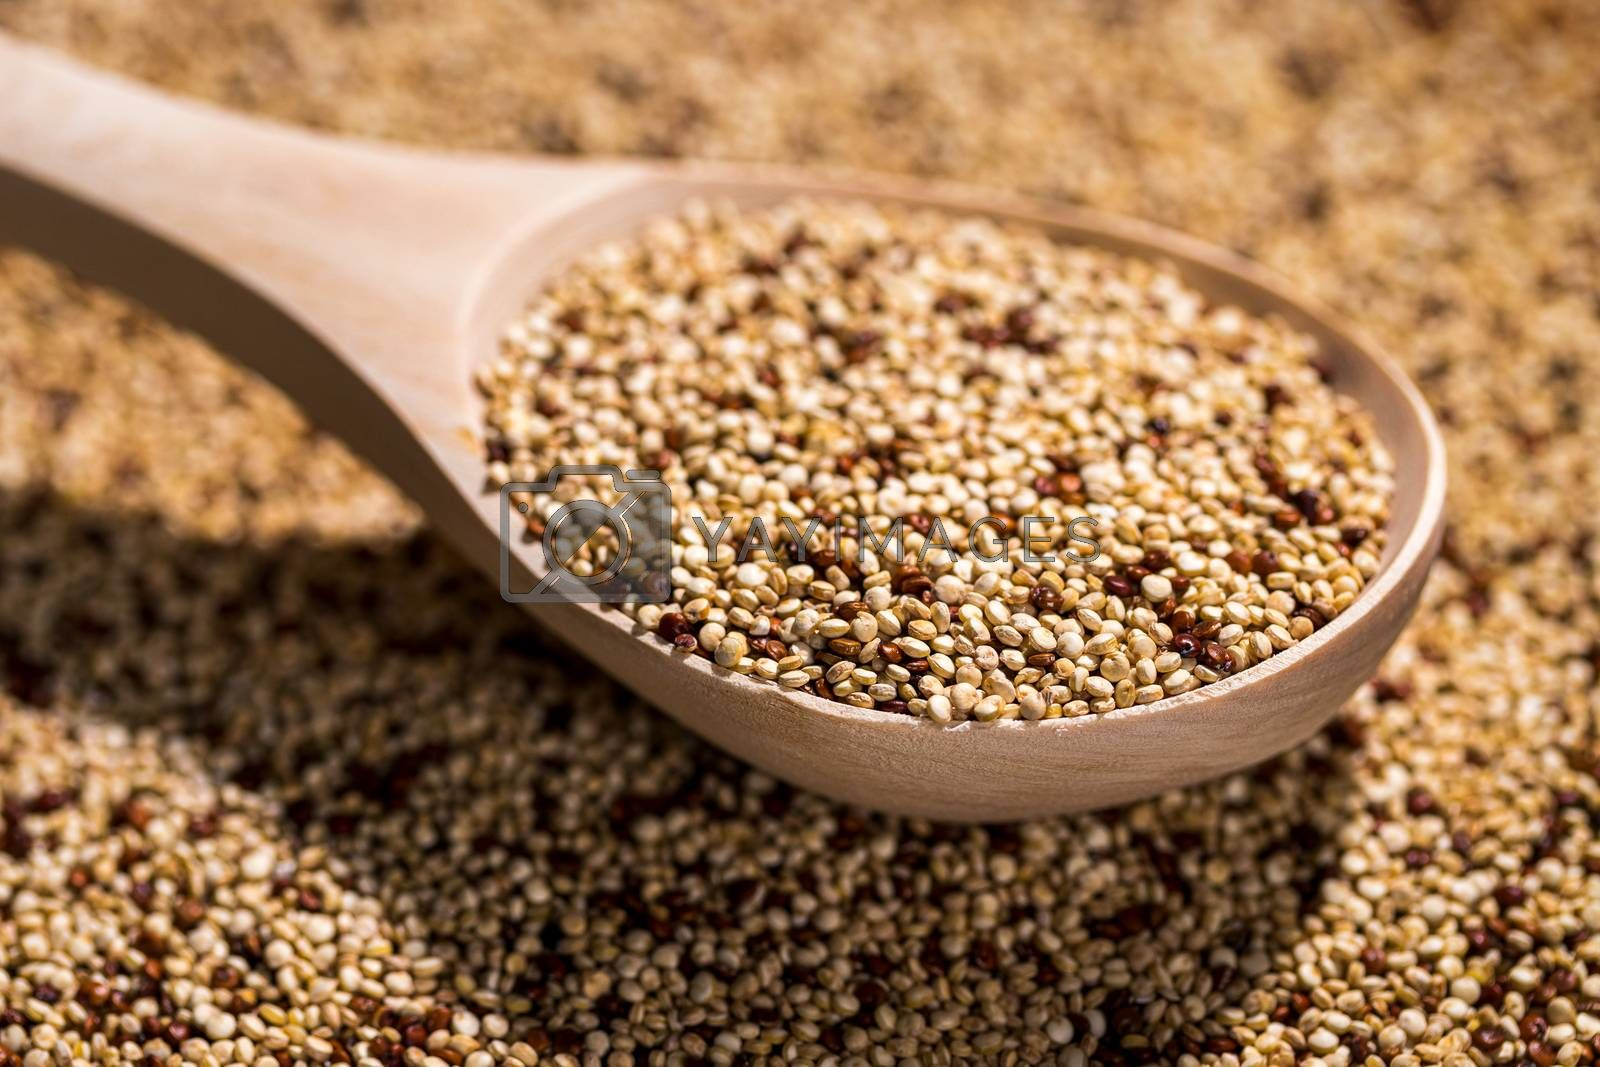 Wooden spoon with an uncooked mixture of red and white quinoa.